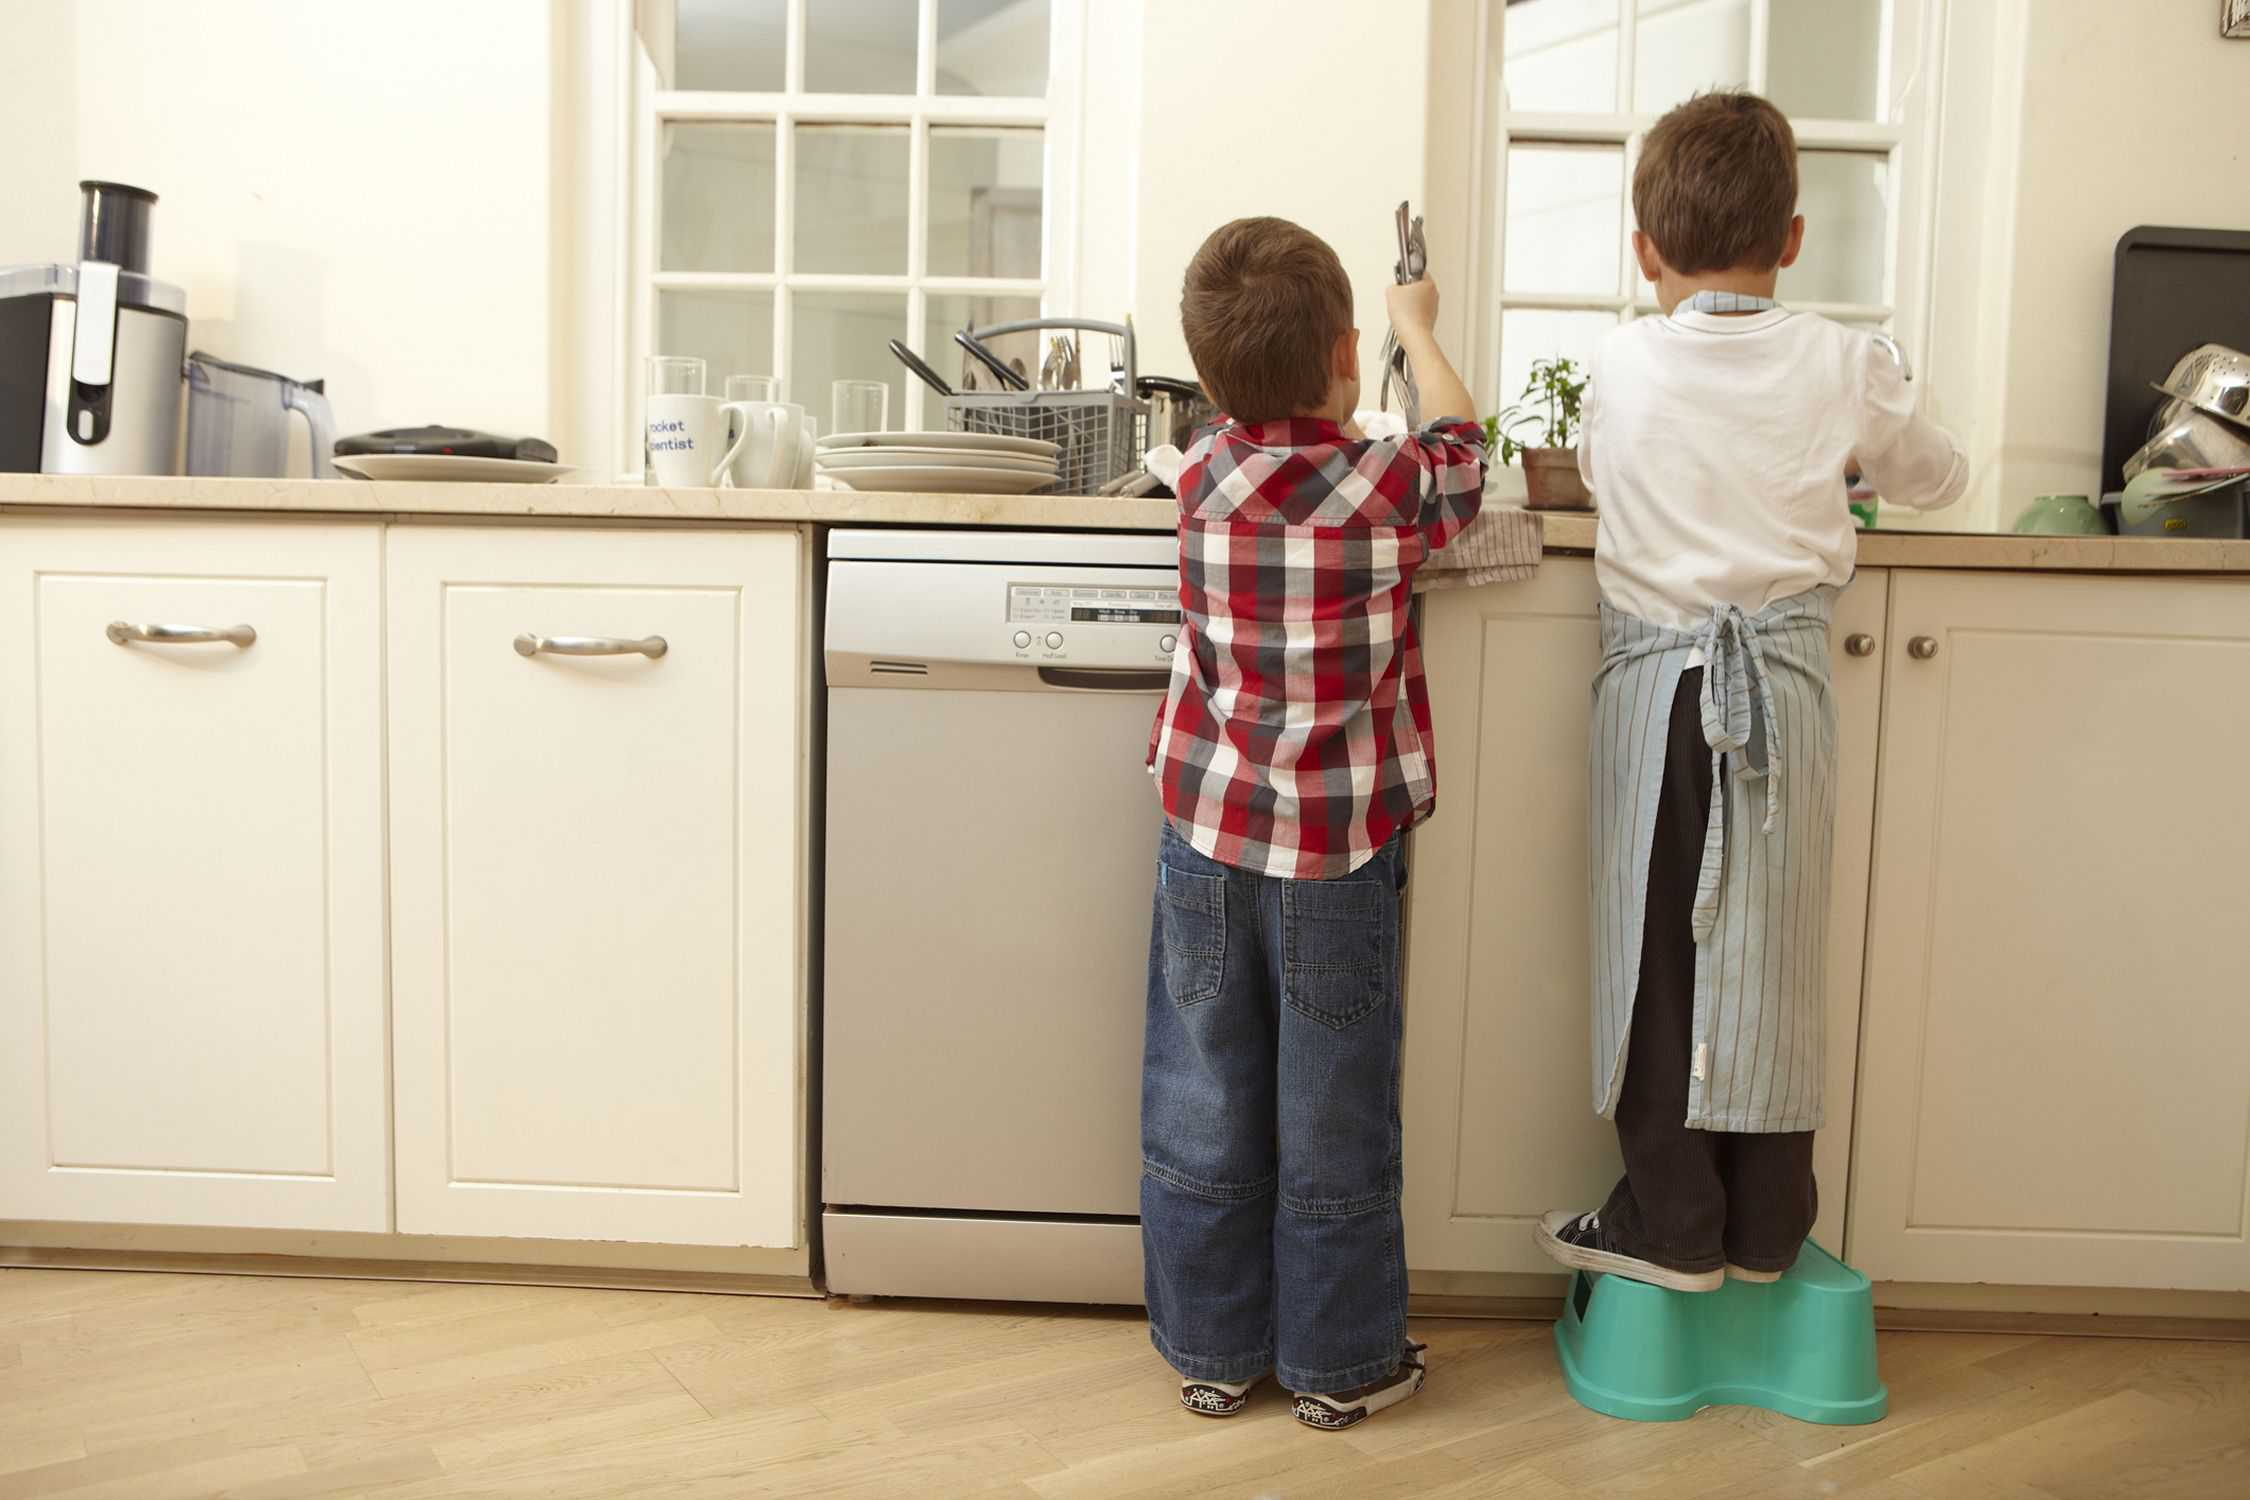 young boys washing dishes at sink